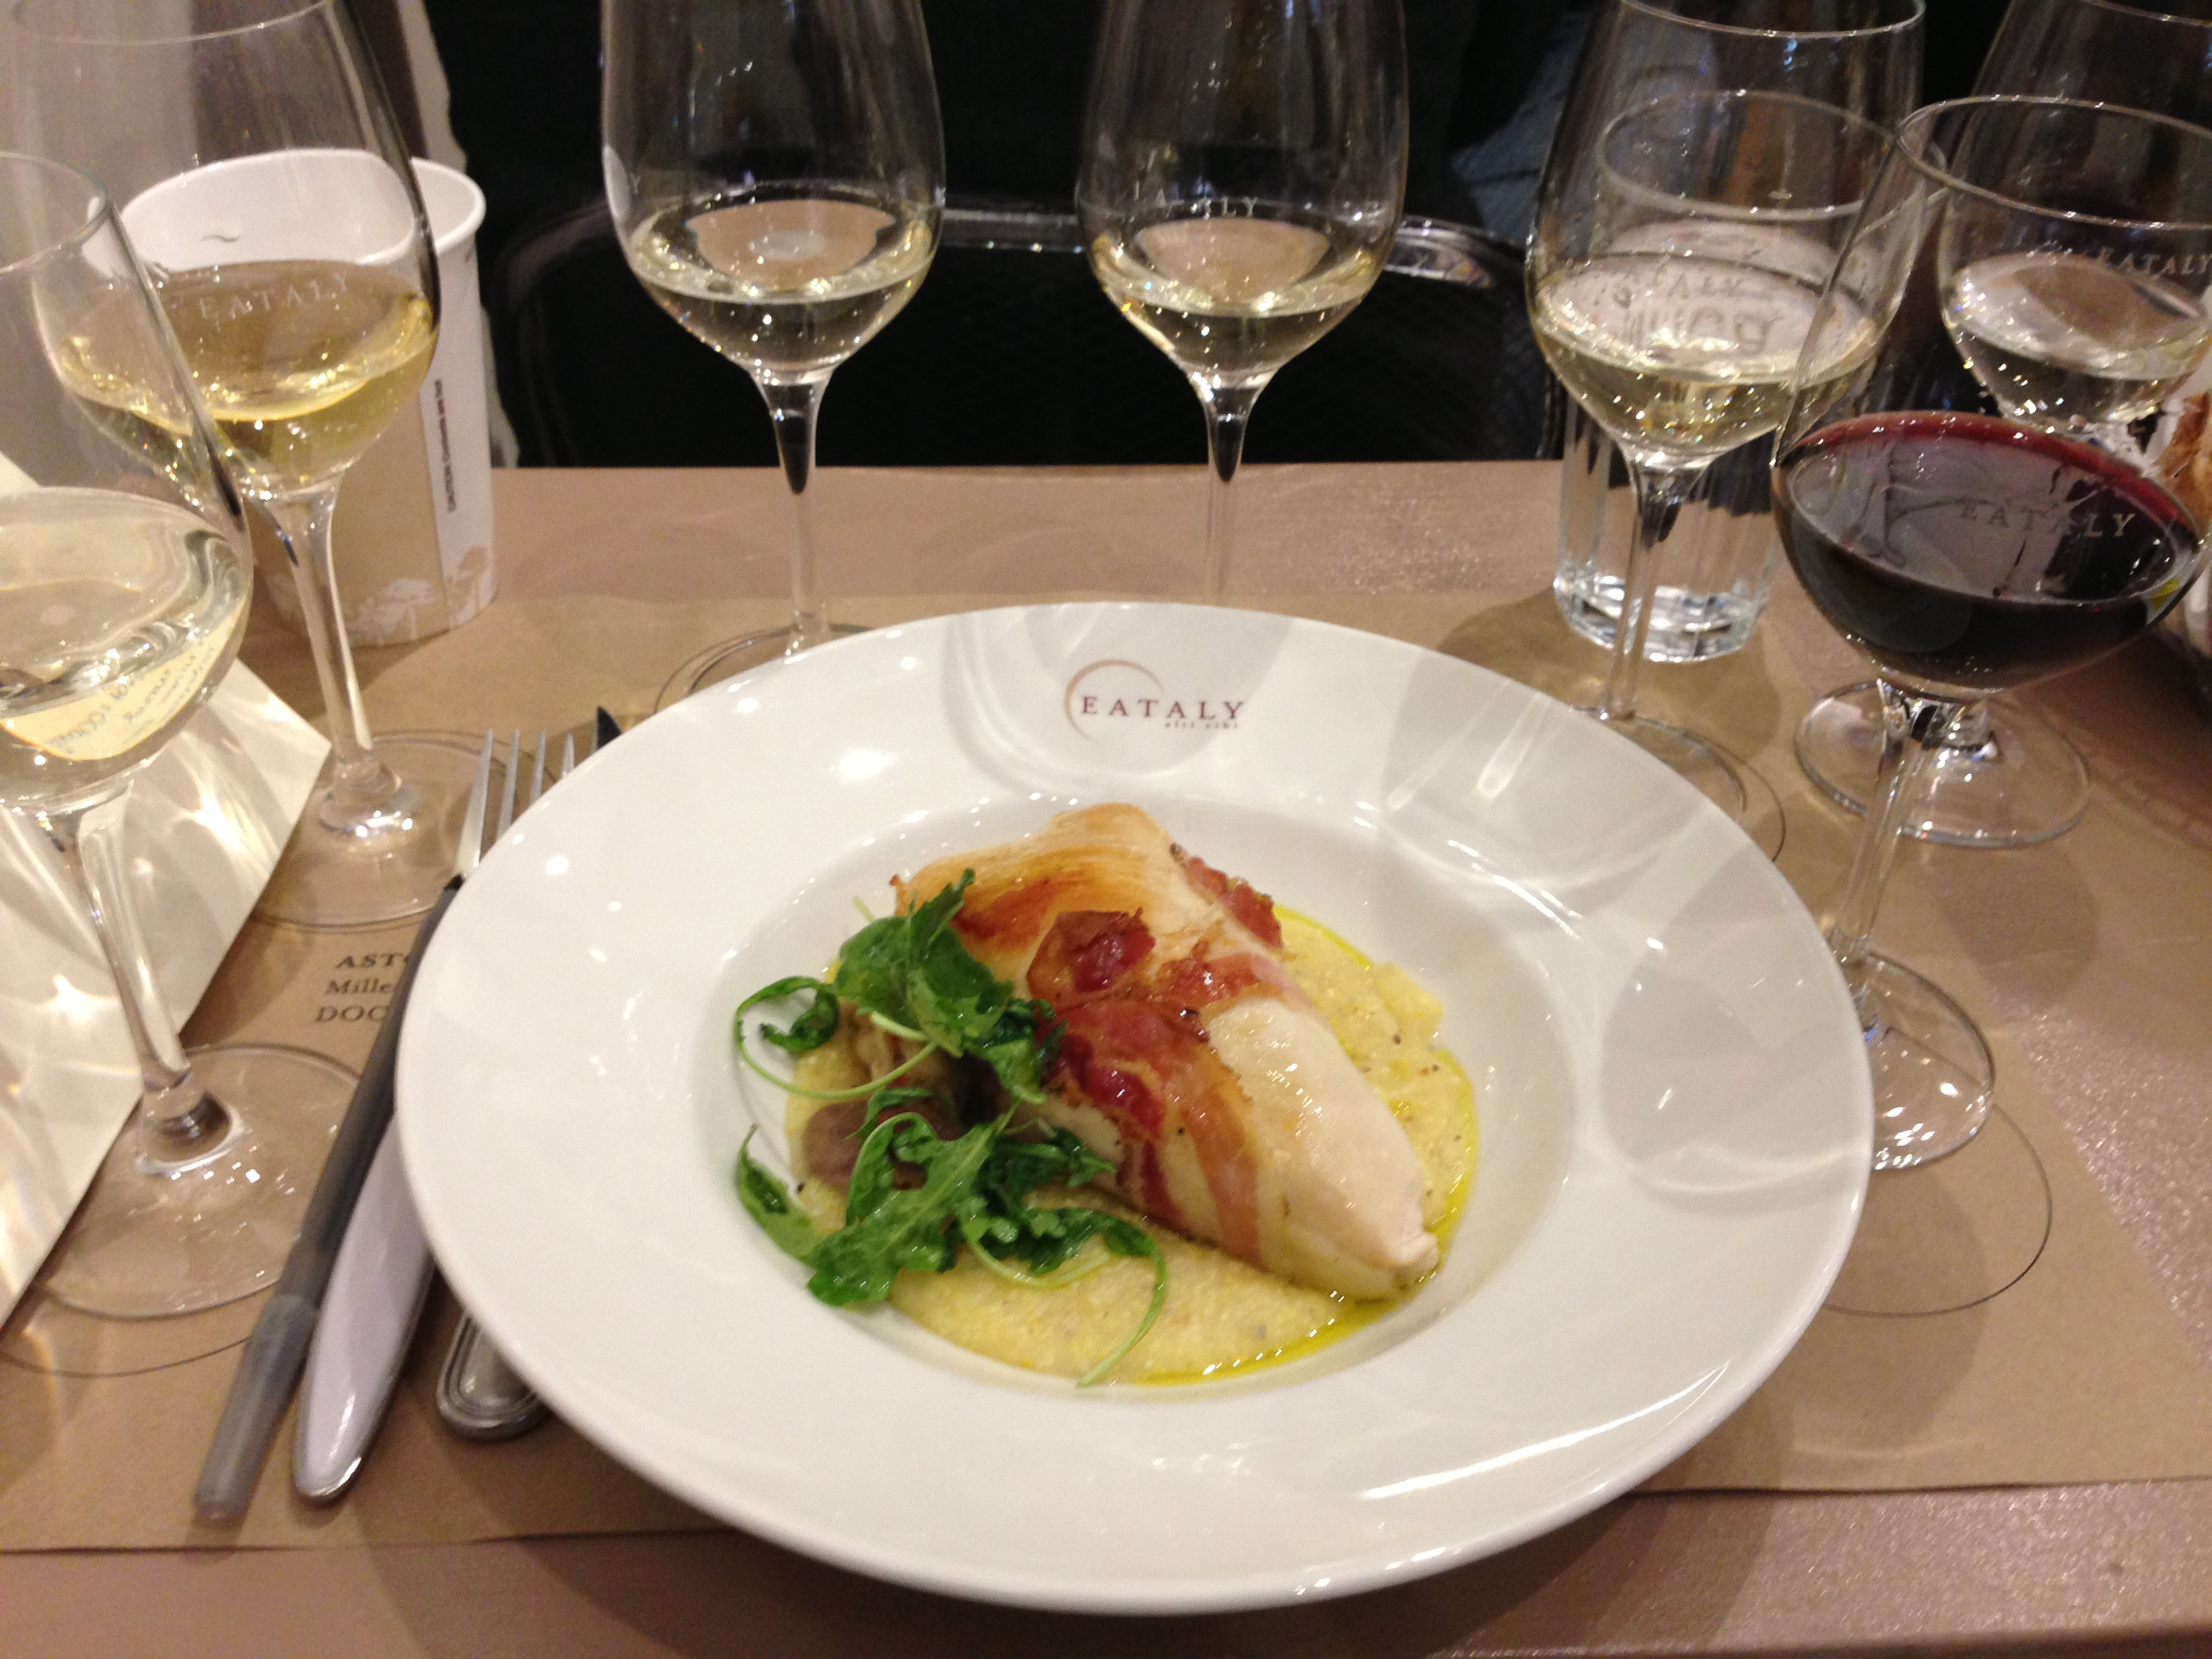 The Wines of Veneto at Eataly